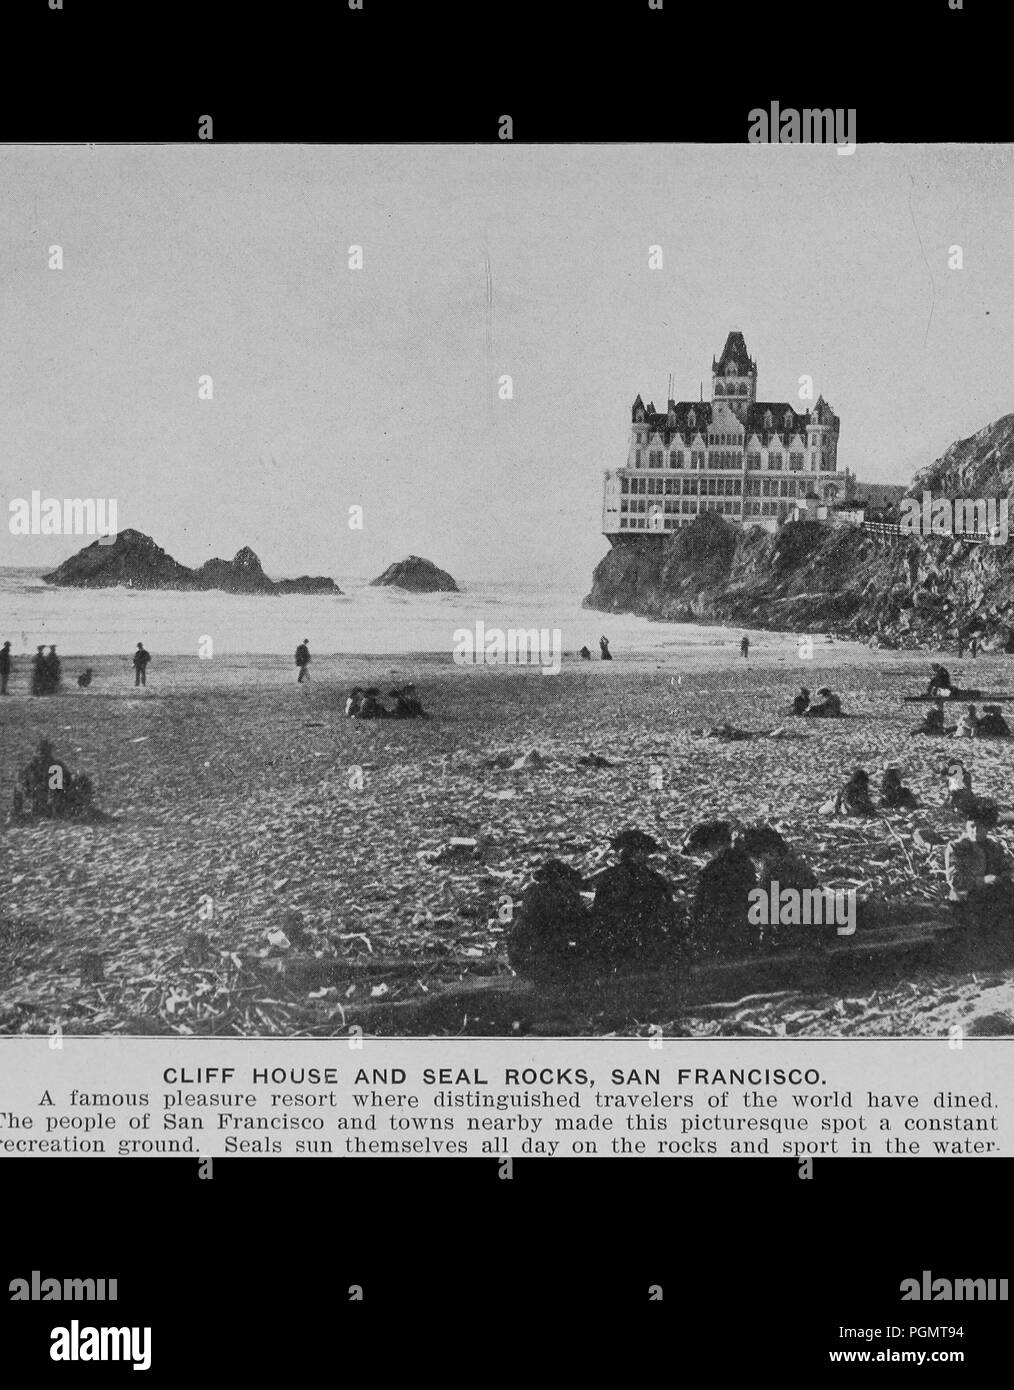 Black and white photograph showing people and seals sitting and standing on a beach in the foreground with the ocean, cliffs, and Adolph Sutro's late-19th-century Cliff House Restaurant, a multilevel Victorian Chateau, in the background, captioned 'Cliff House and Seal Rocks, San Francisco', 1906. Courtesy Internet Archive. () Stock Photo